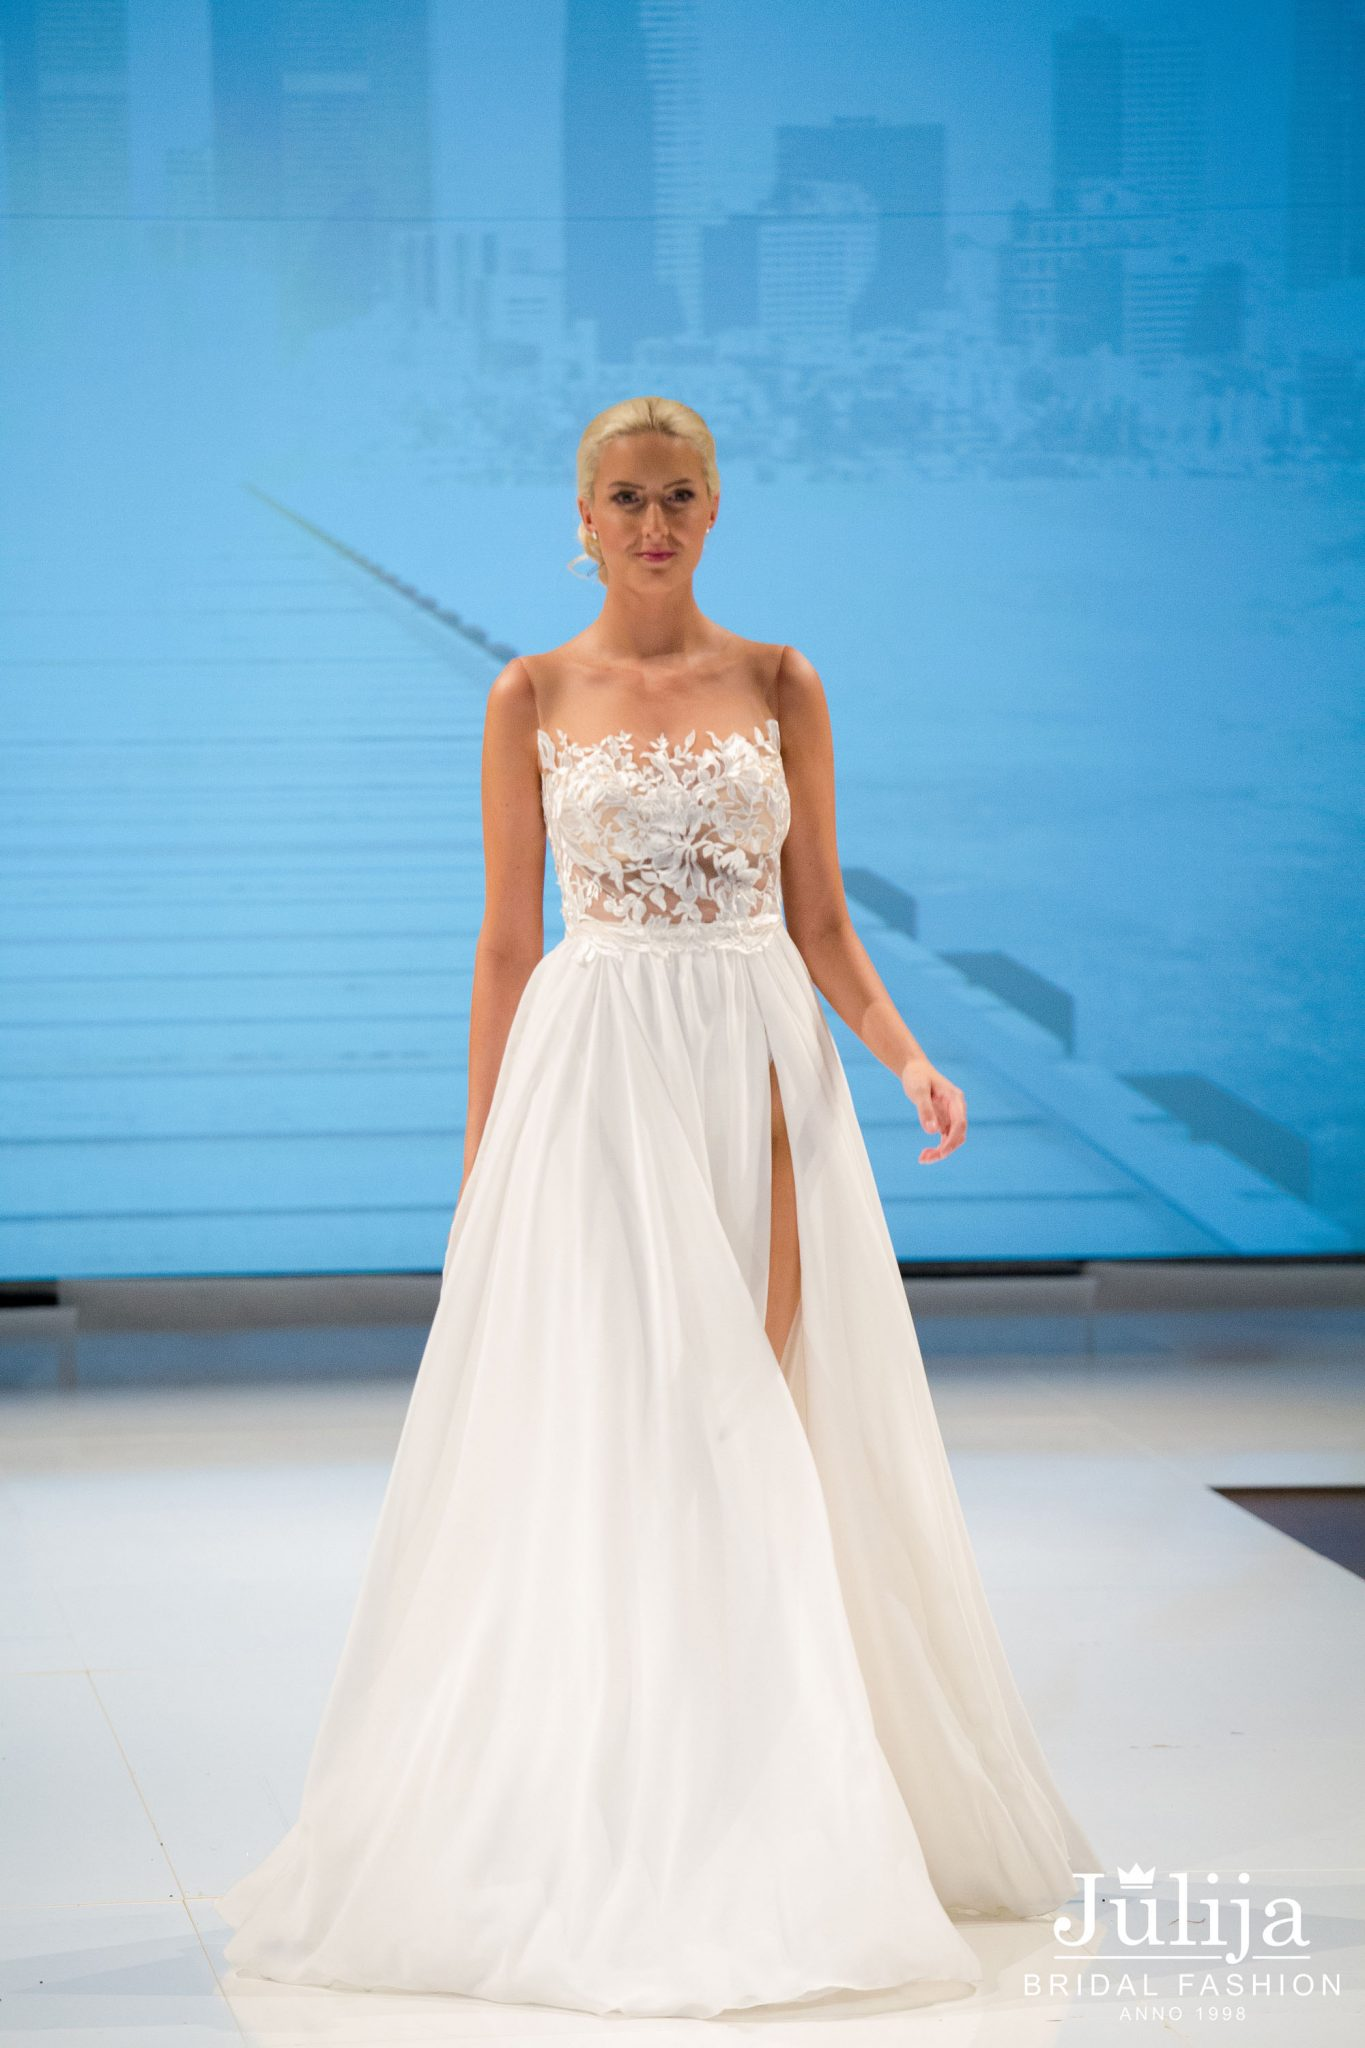 Wholesale wedding dresses - Julija Bridal Fashion